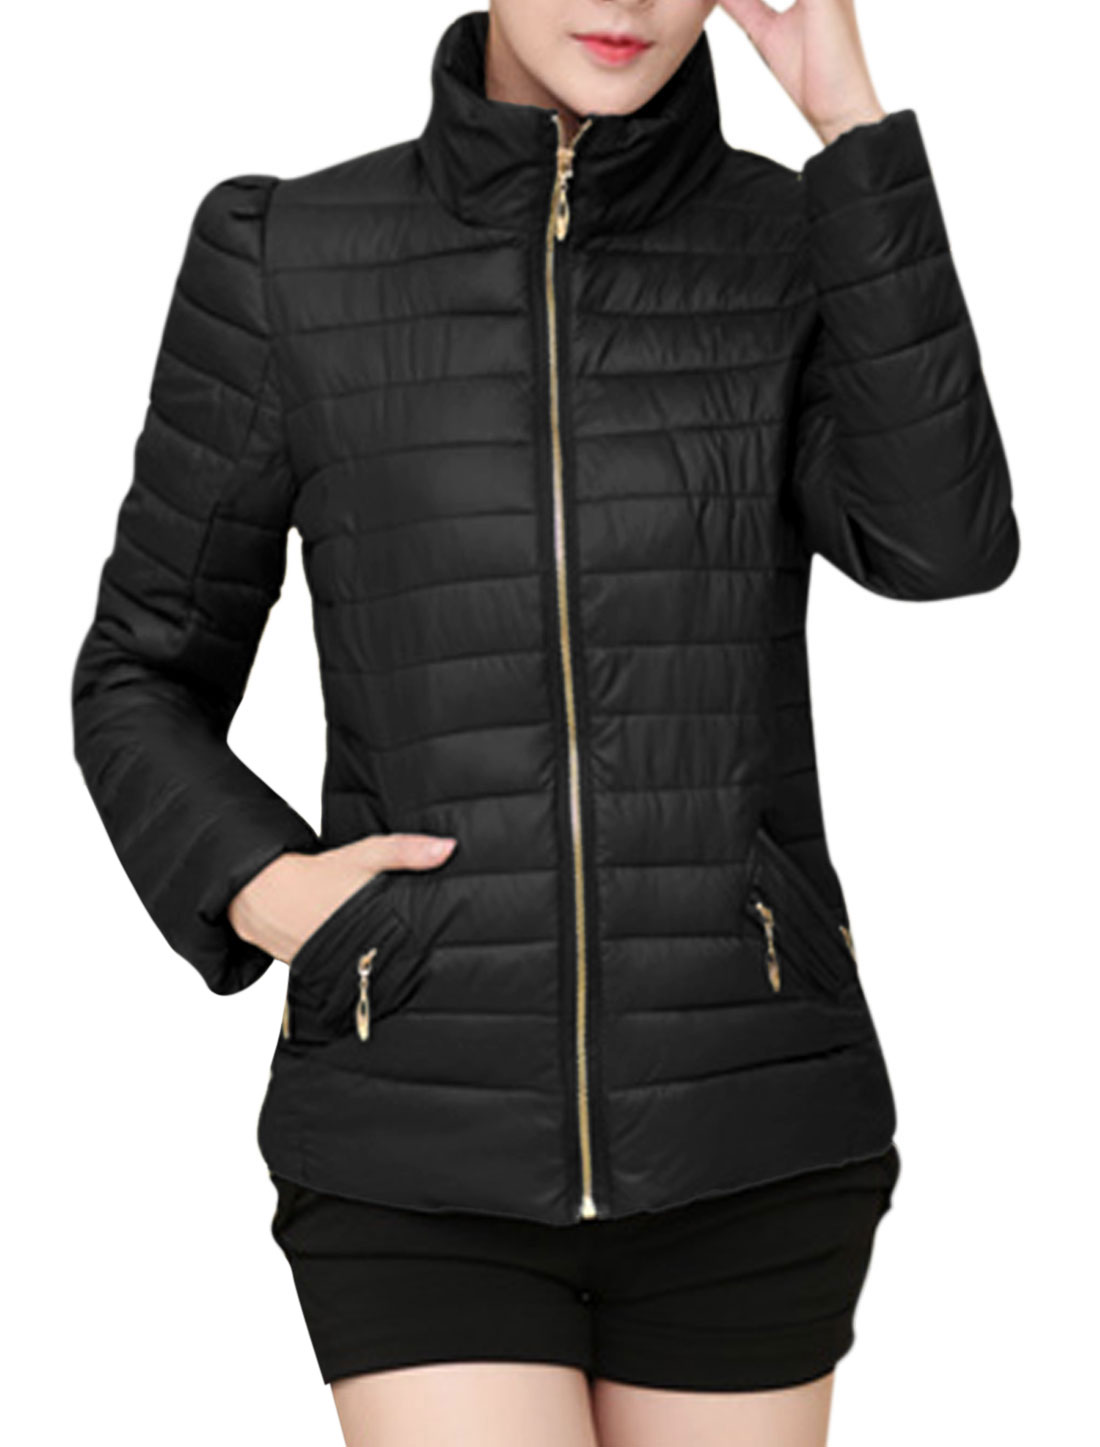 Lady Zip Up Zipper Closed Pockets Front Casual Padded Coat Black M